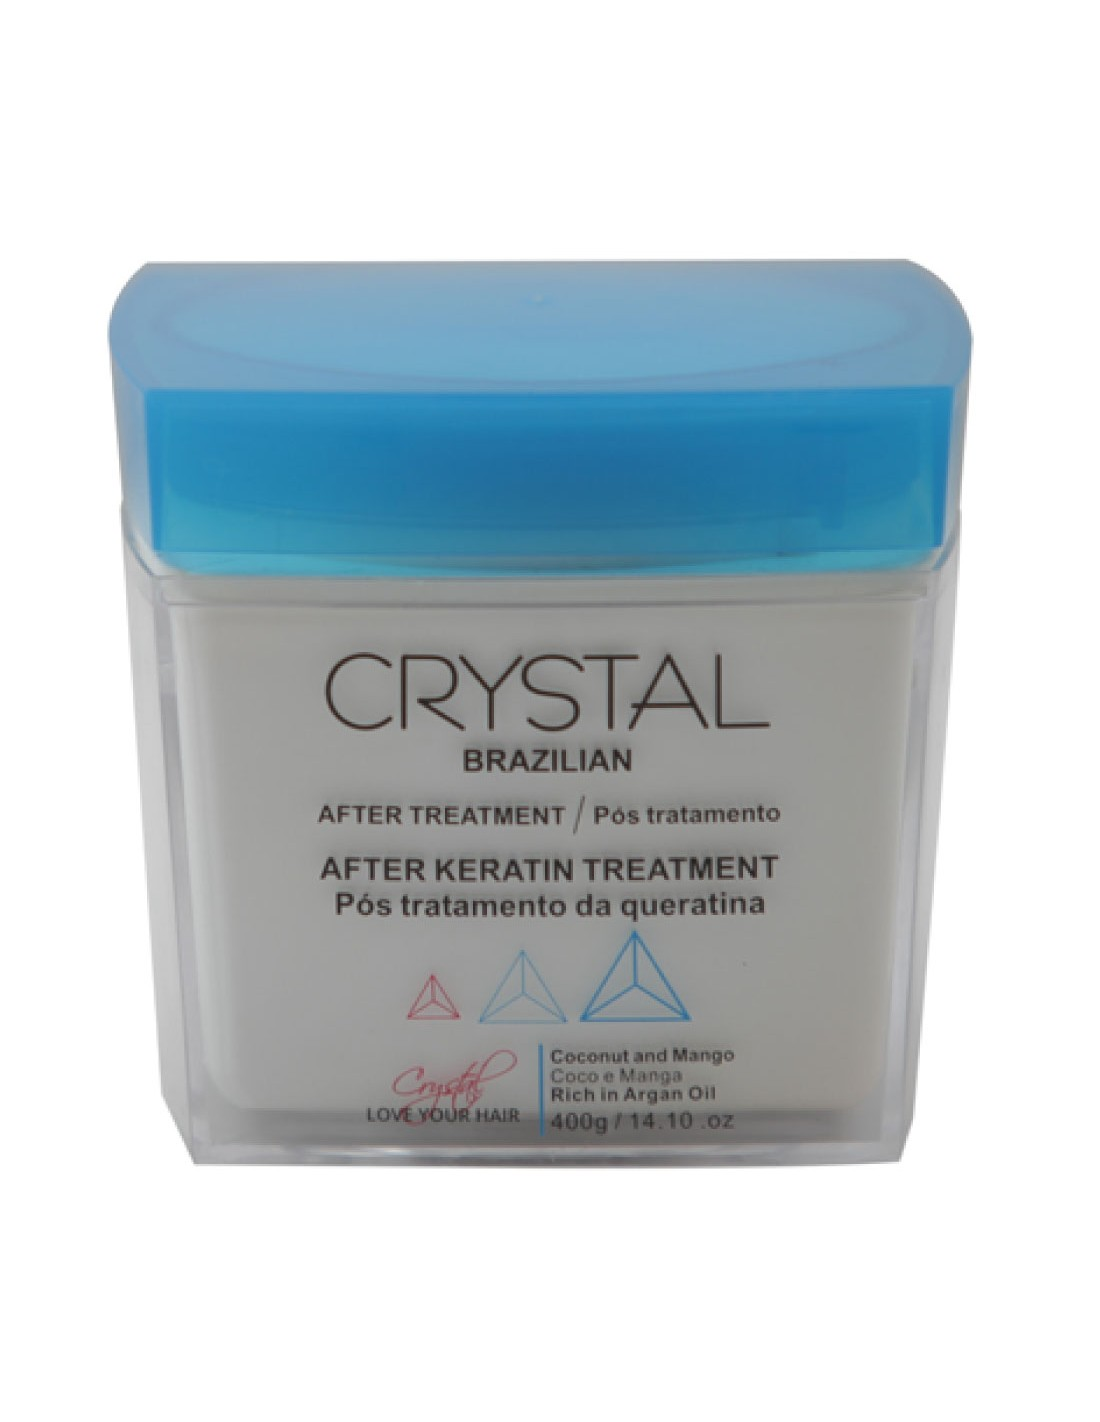 Crystal express mask 400g